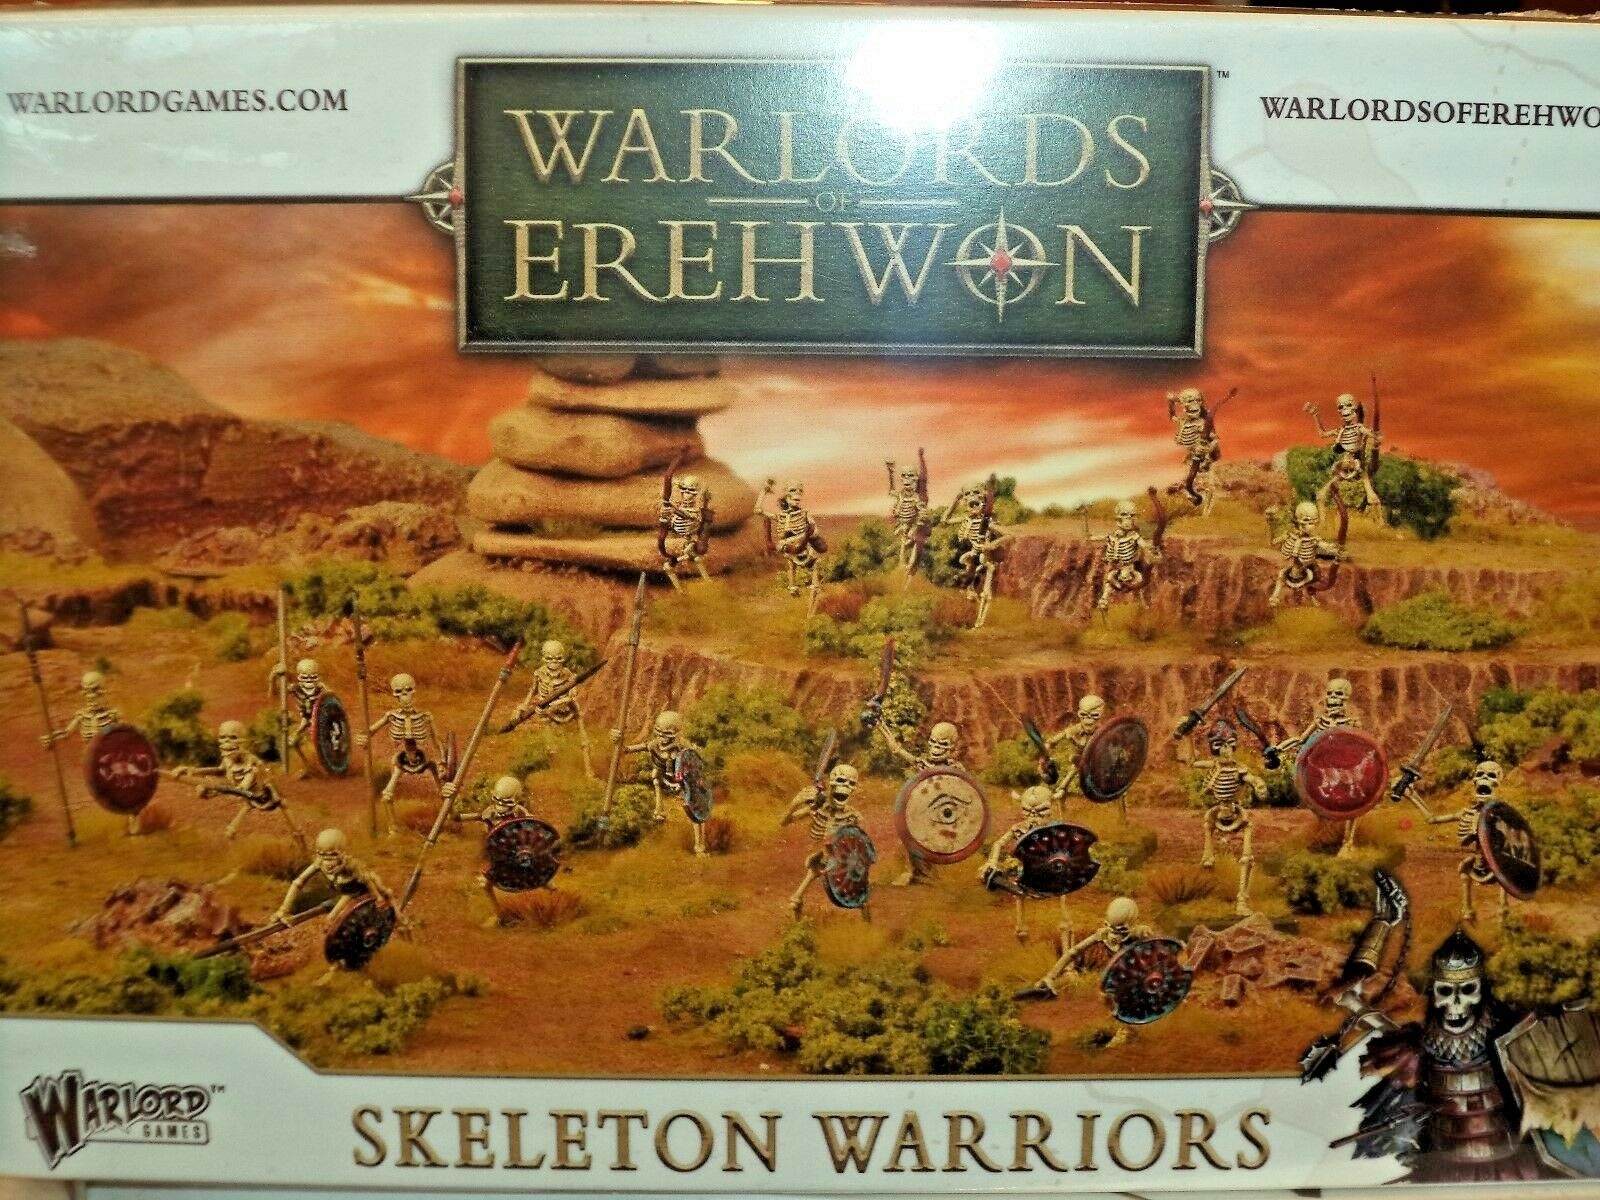 Skeleton Warriors - Warlords of Erehwon Models Warlord Games Games Games New db4295